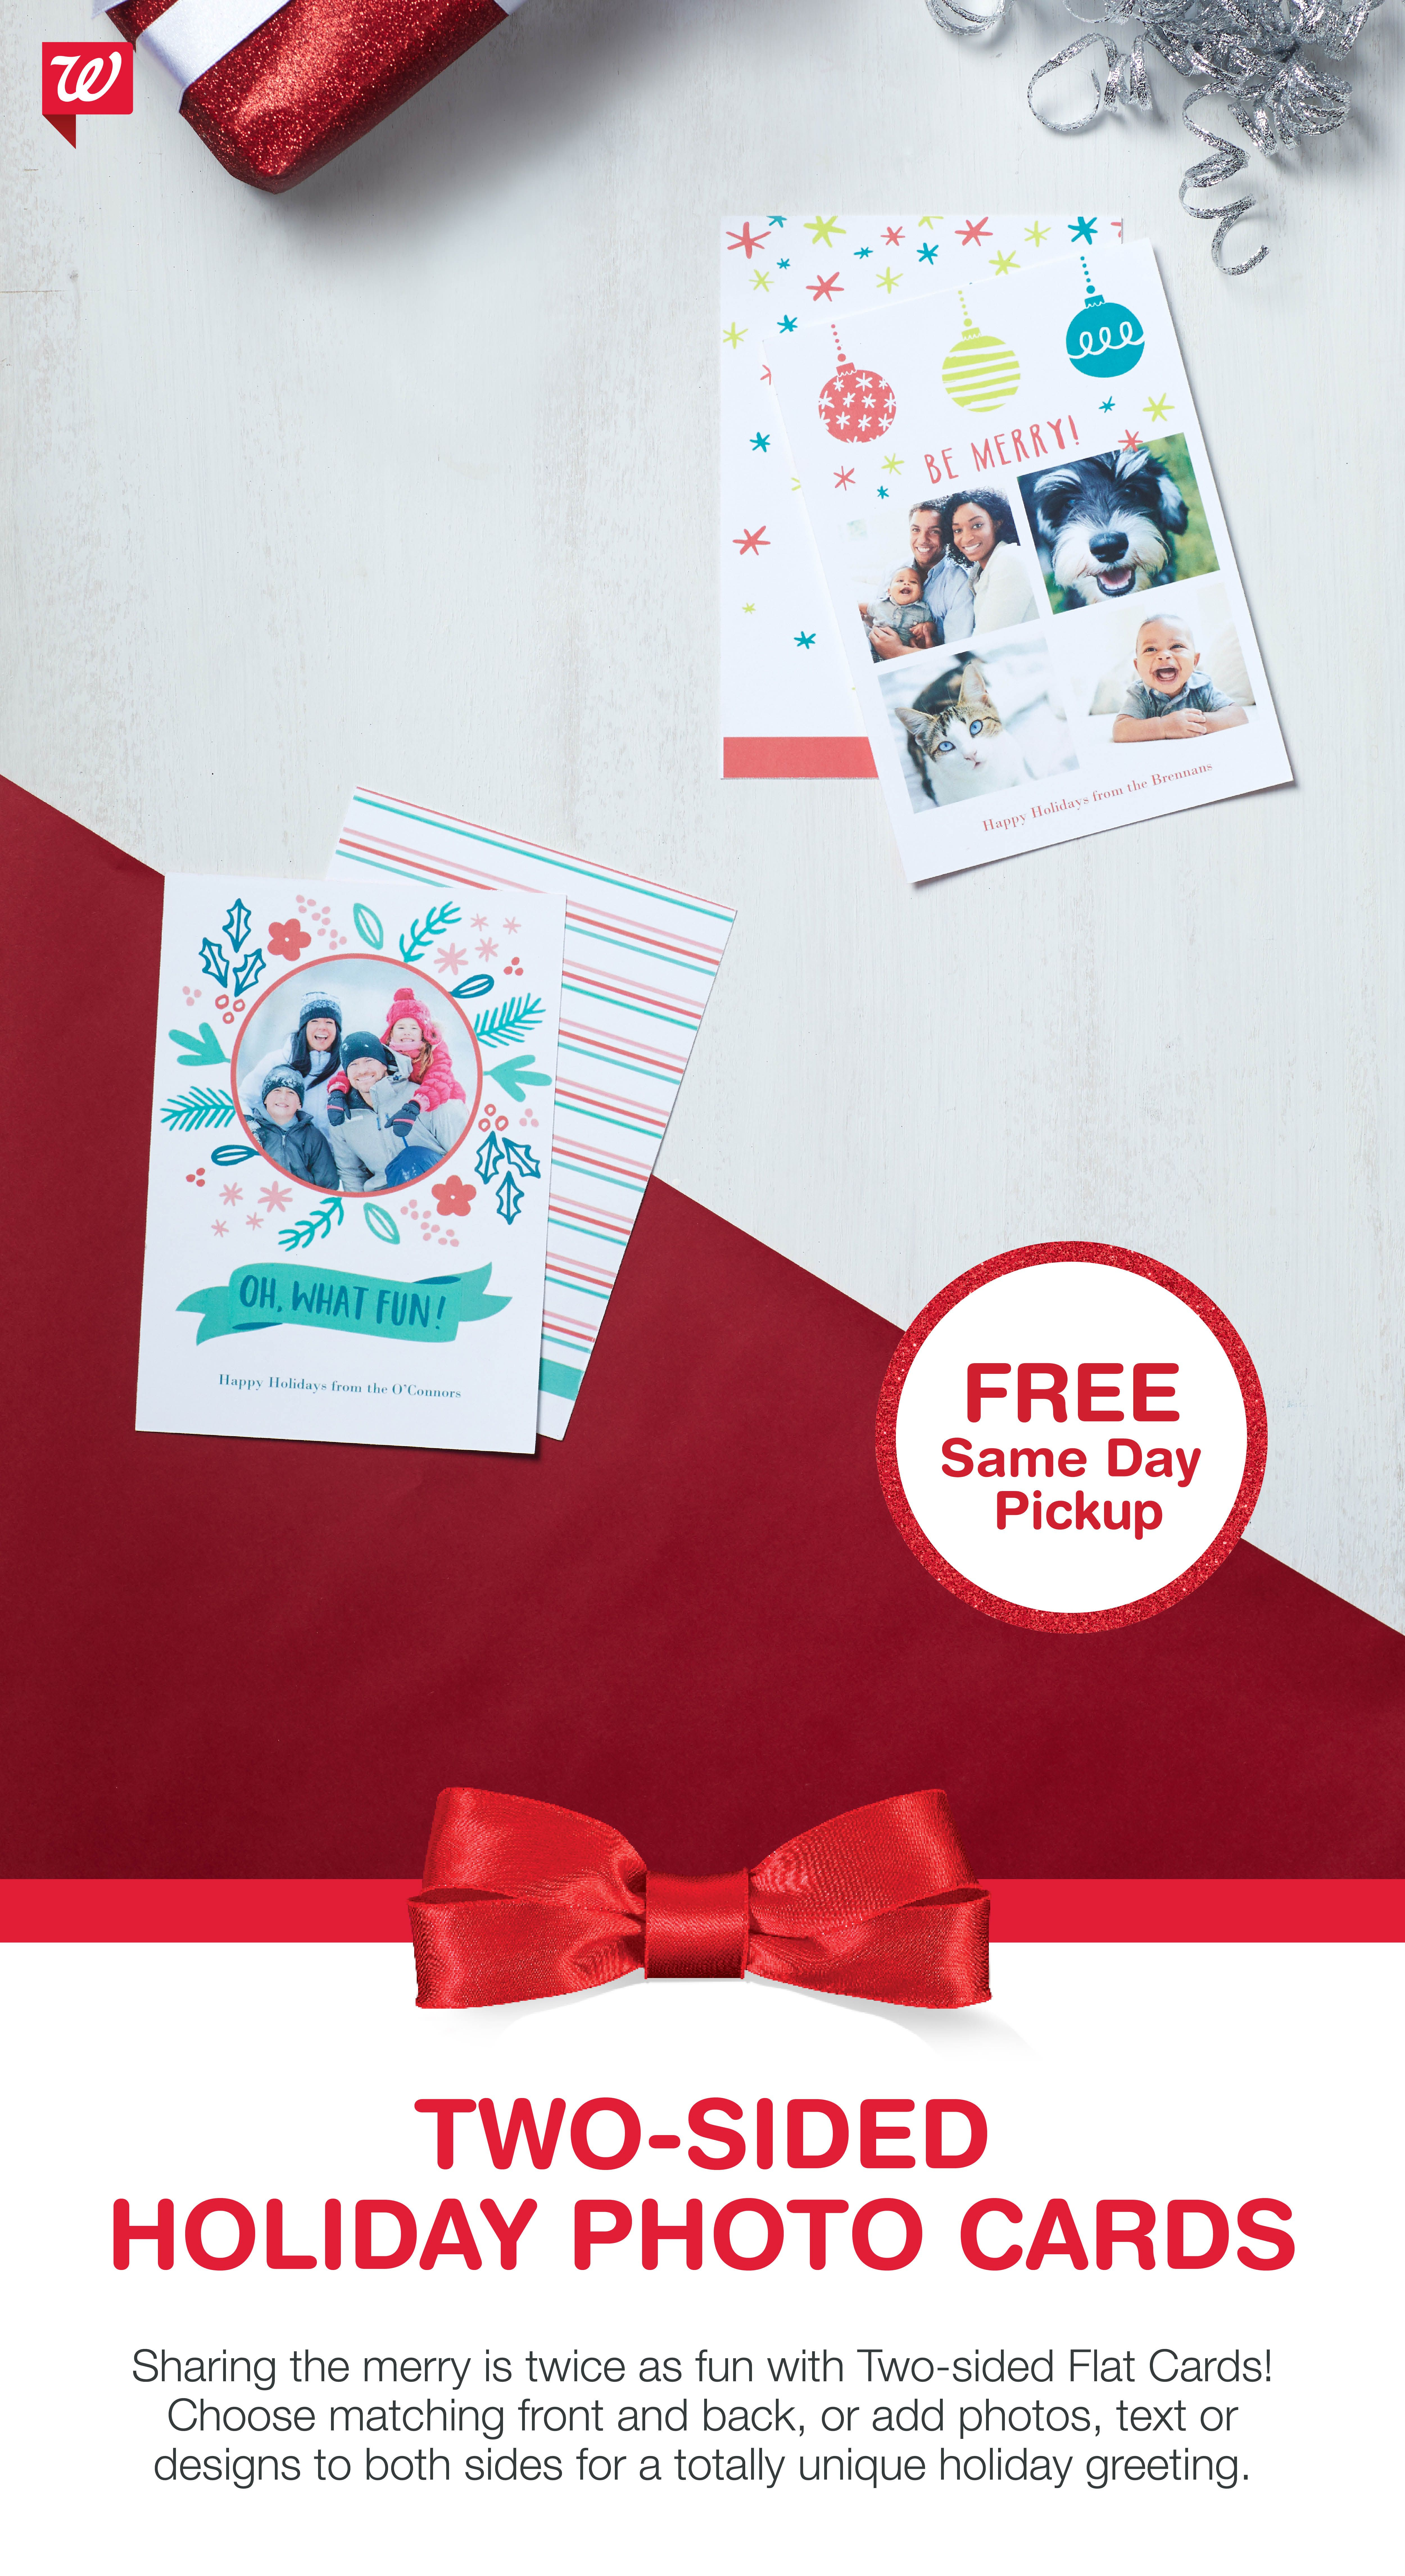 Share The Merry With Two-Sided Flat Cards! Get It Today With Free - Free Printable Flat Christmas Cards